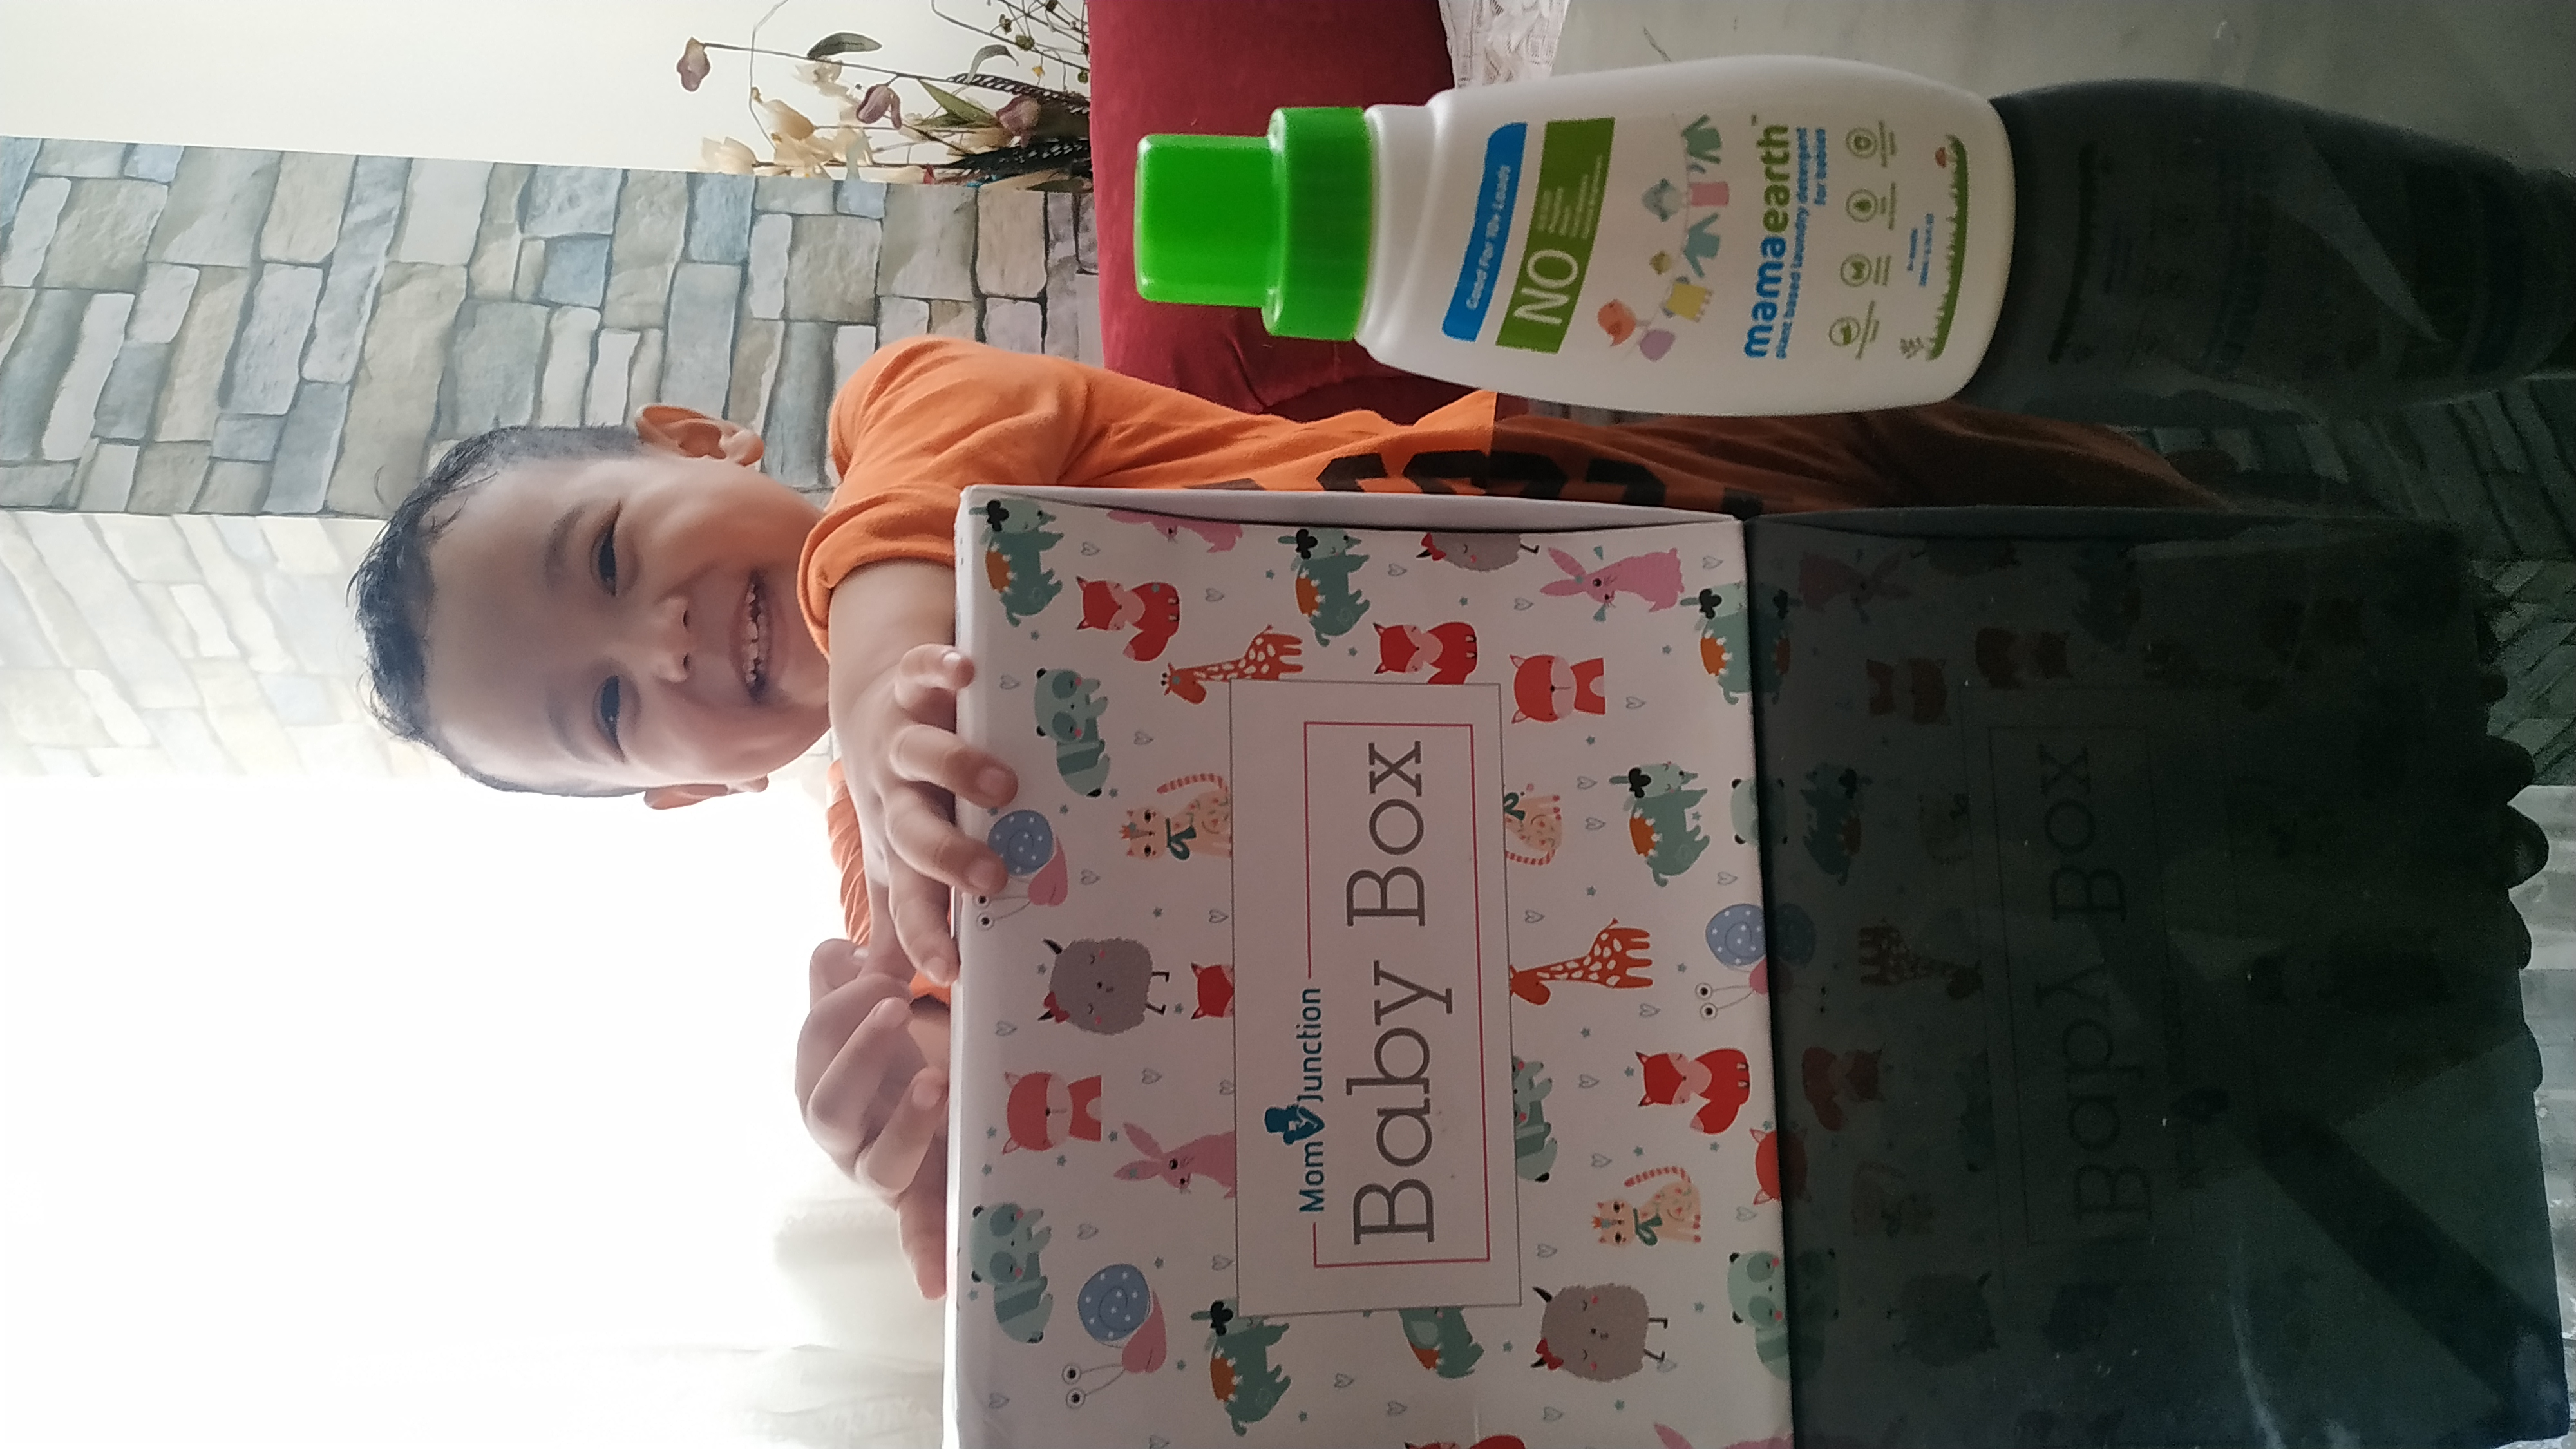 Mamaearth Plant Based Laundry Liquid Detergent For Babies-Does what it claims!-By mommiewonders30